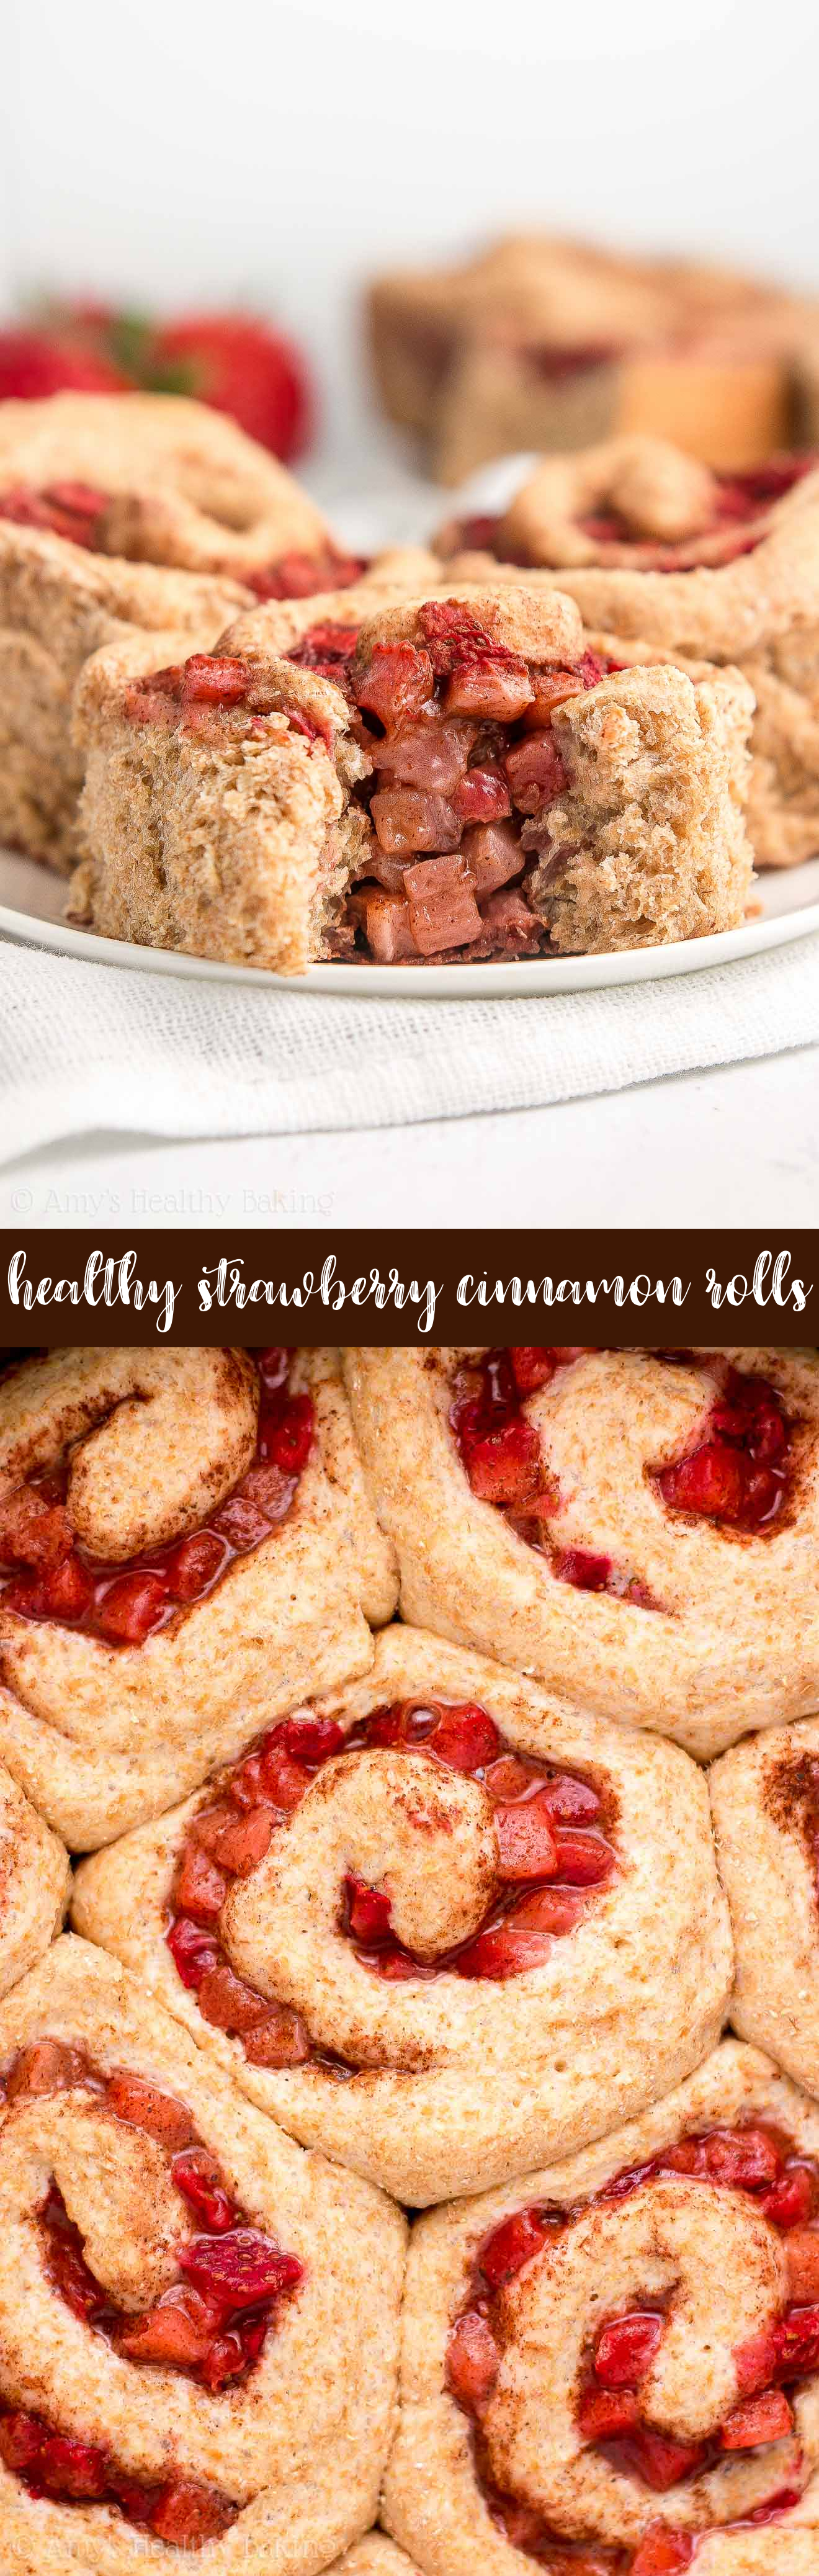 The Best Healthy Low Calorie Whole Wheat Strawberry Cinnamon Rolls